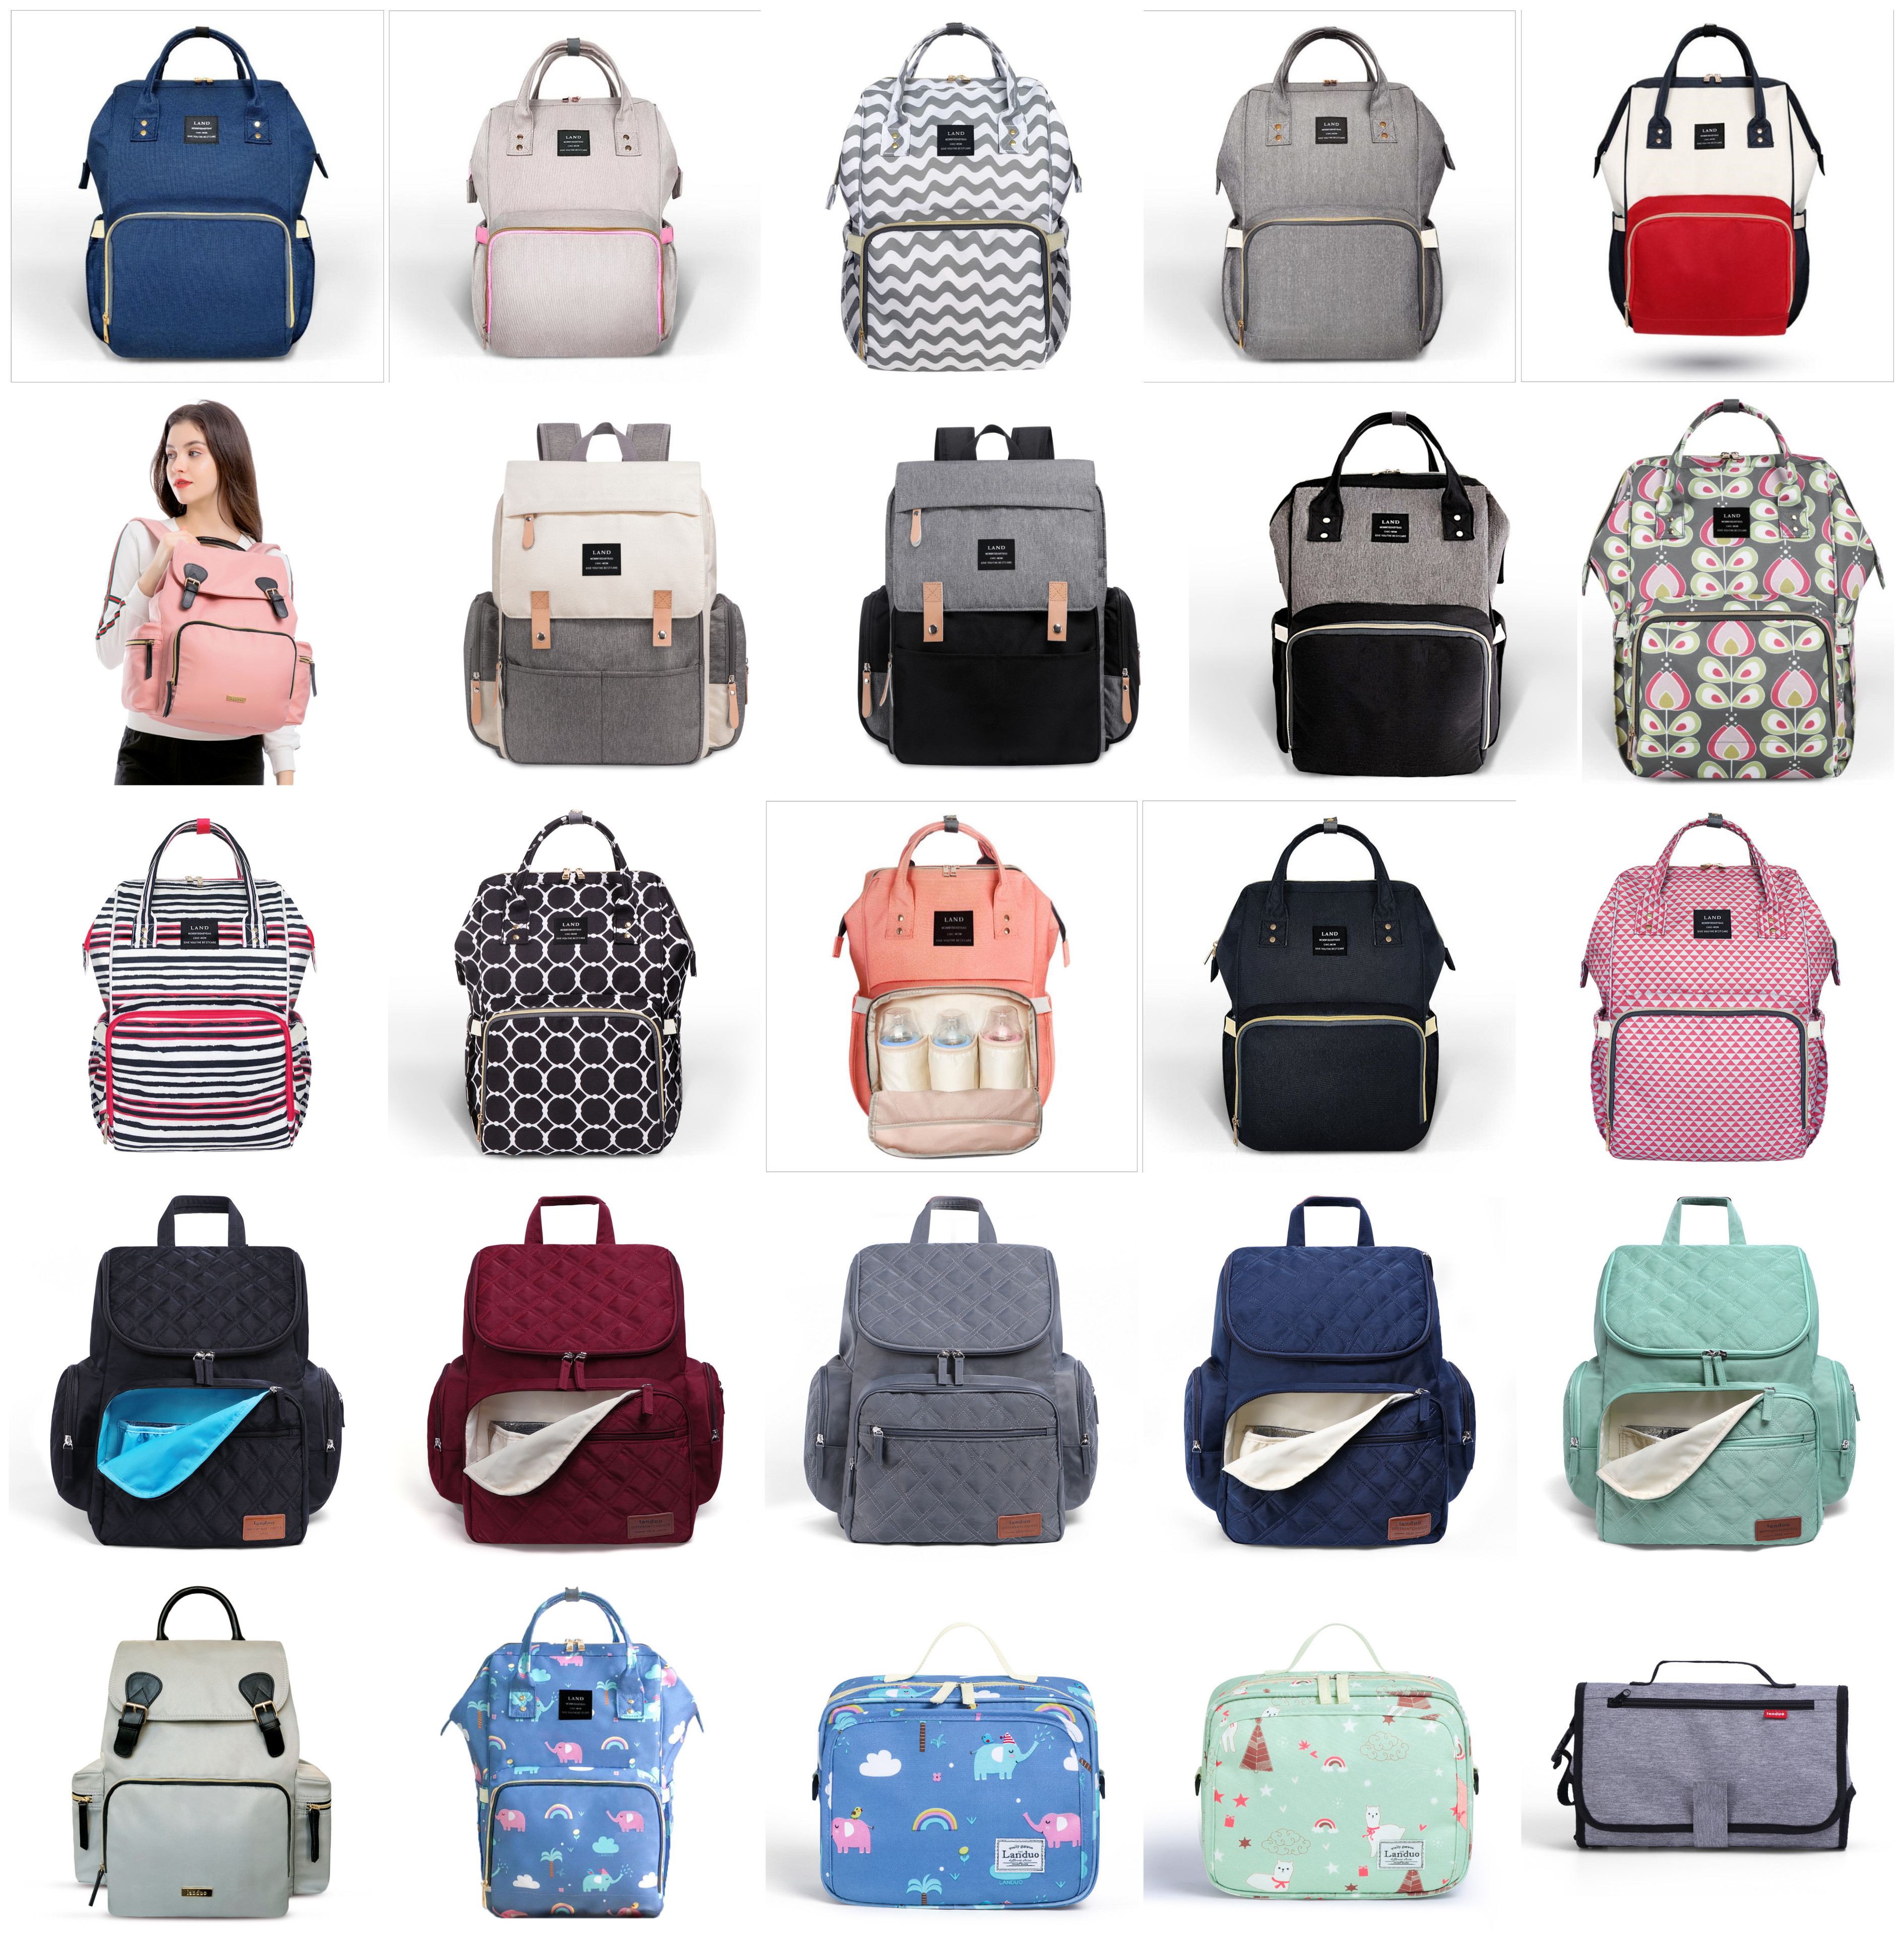 Authentic LAND Mommy Diaper Bags Mother Large Capacity Travel Nappy Backpacks with anti loss zipper Baby Authentic LAND Mommy Diaper Bags Mother Large Capacity Travel Nappy Backpacks with anti-loss zipper Baby Nursing Bags dropship